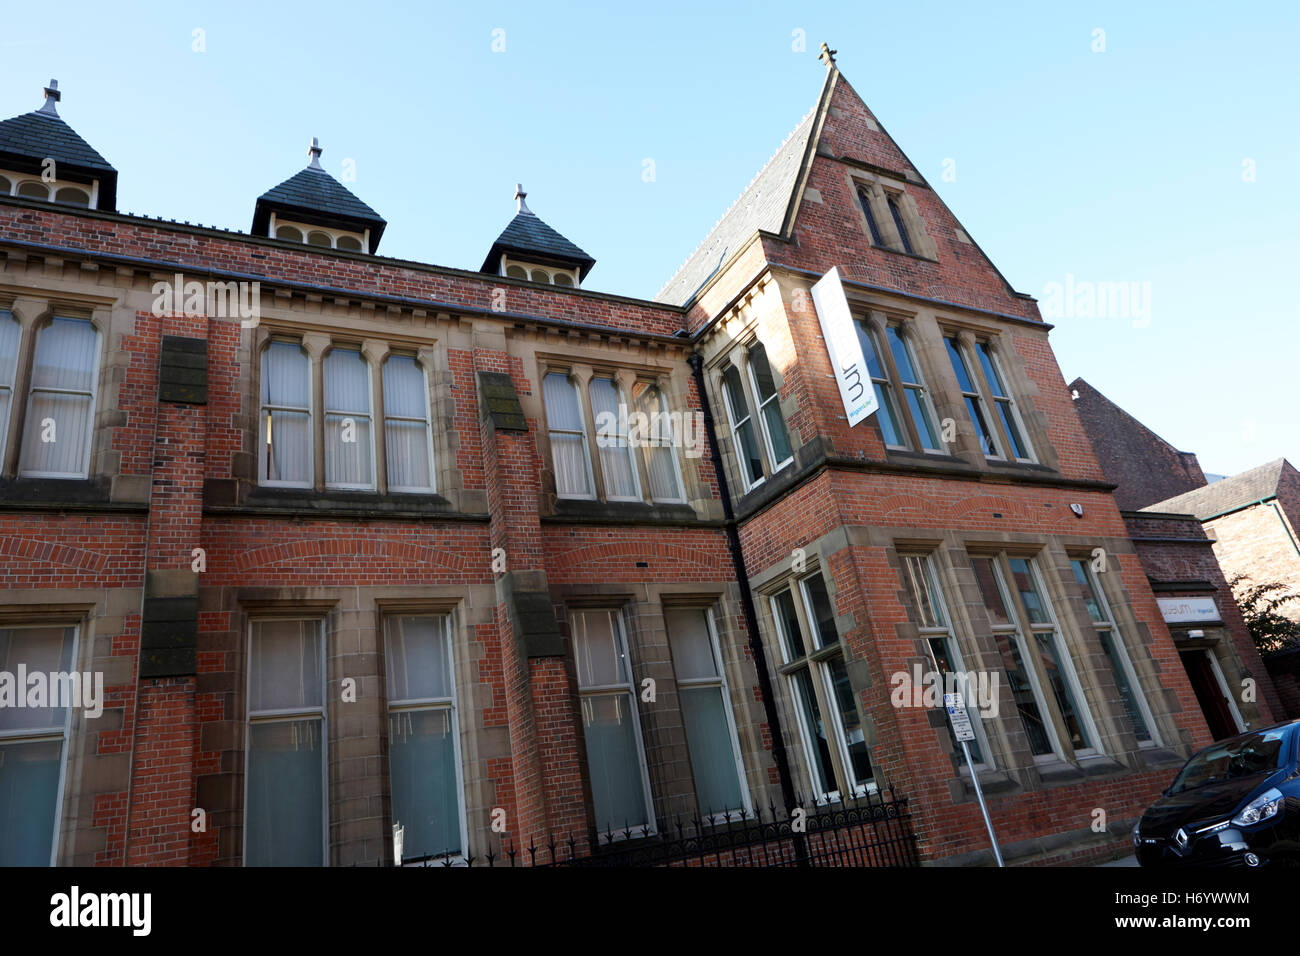 museum of Wigan life England United Kingdom - Stock Image